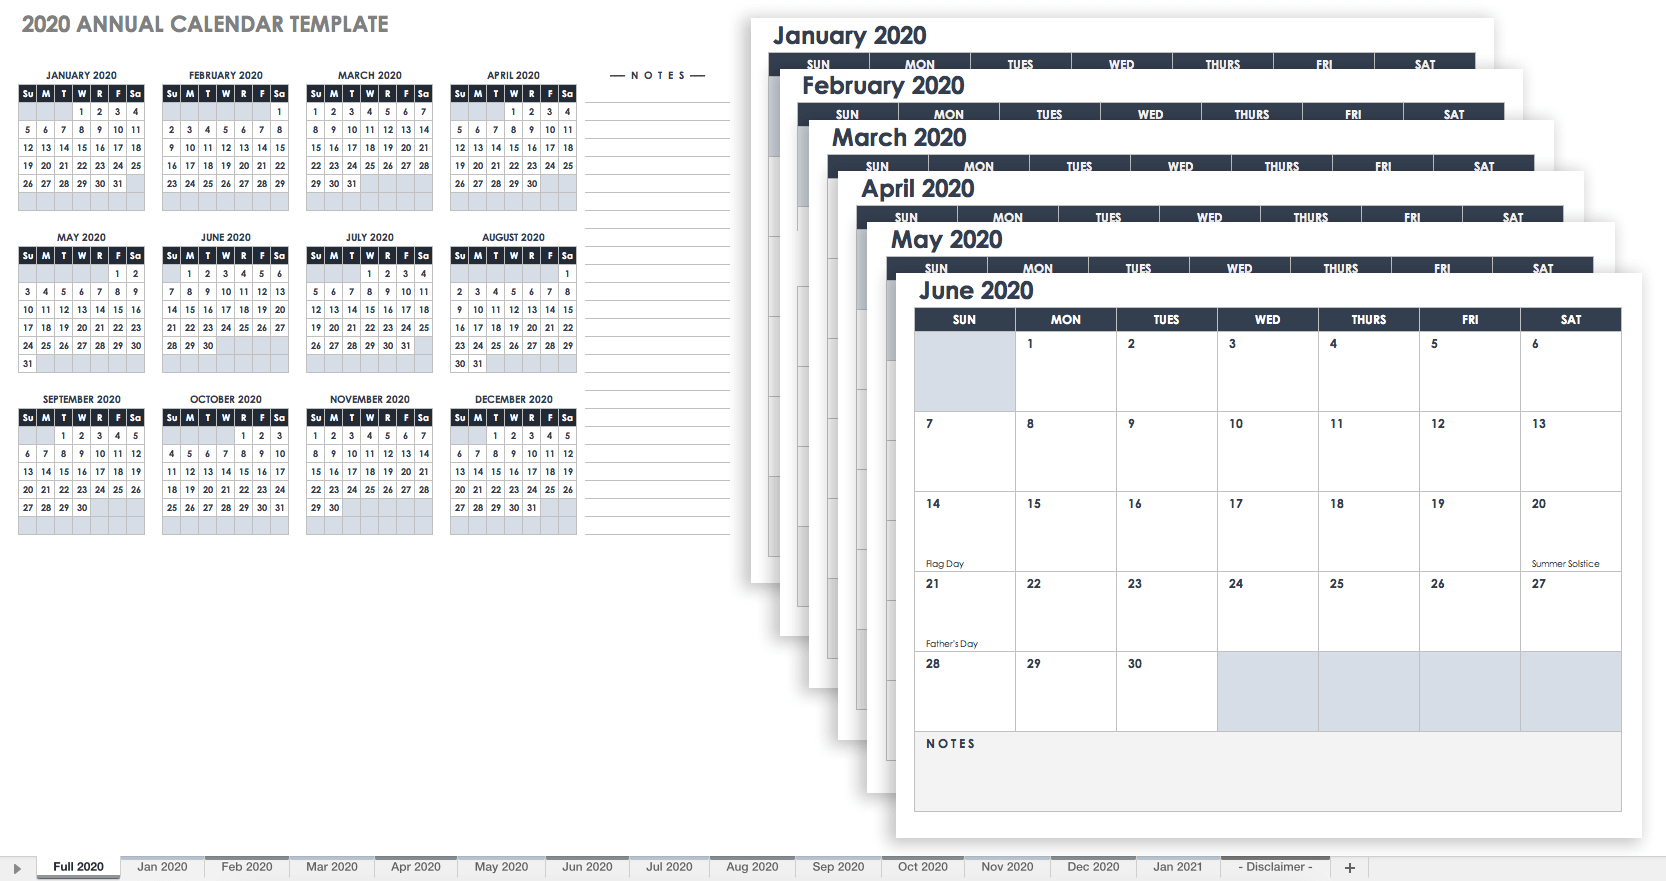 15 Free Monthly Calendar Templates | Smartsheet intended for Blank Calendar Of Events Template